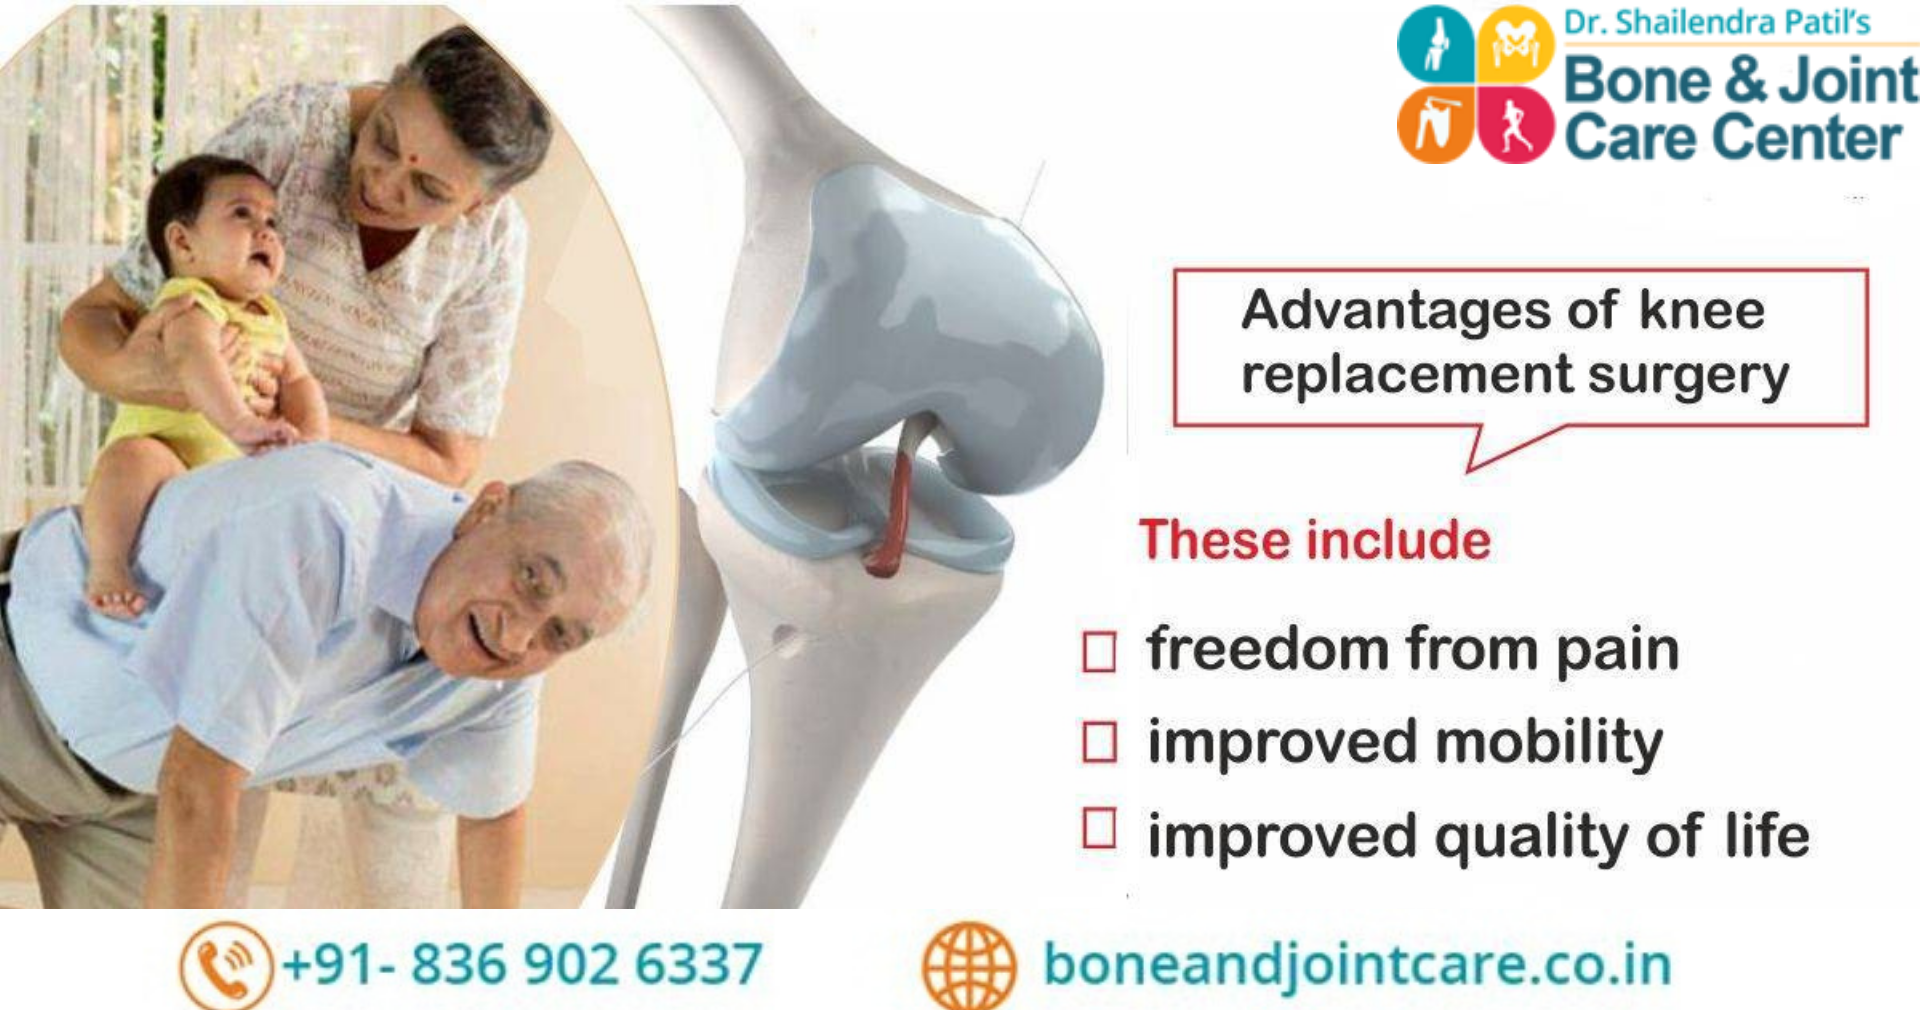 https://boneandjointcare.co.in/wp-content/uploads/2019/06/When-do-you-need-a-Joint-Replacement-Surgery-1200x600.jpg